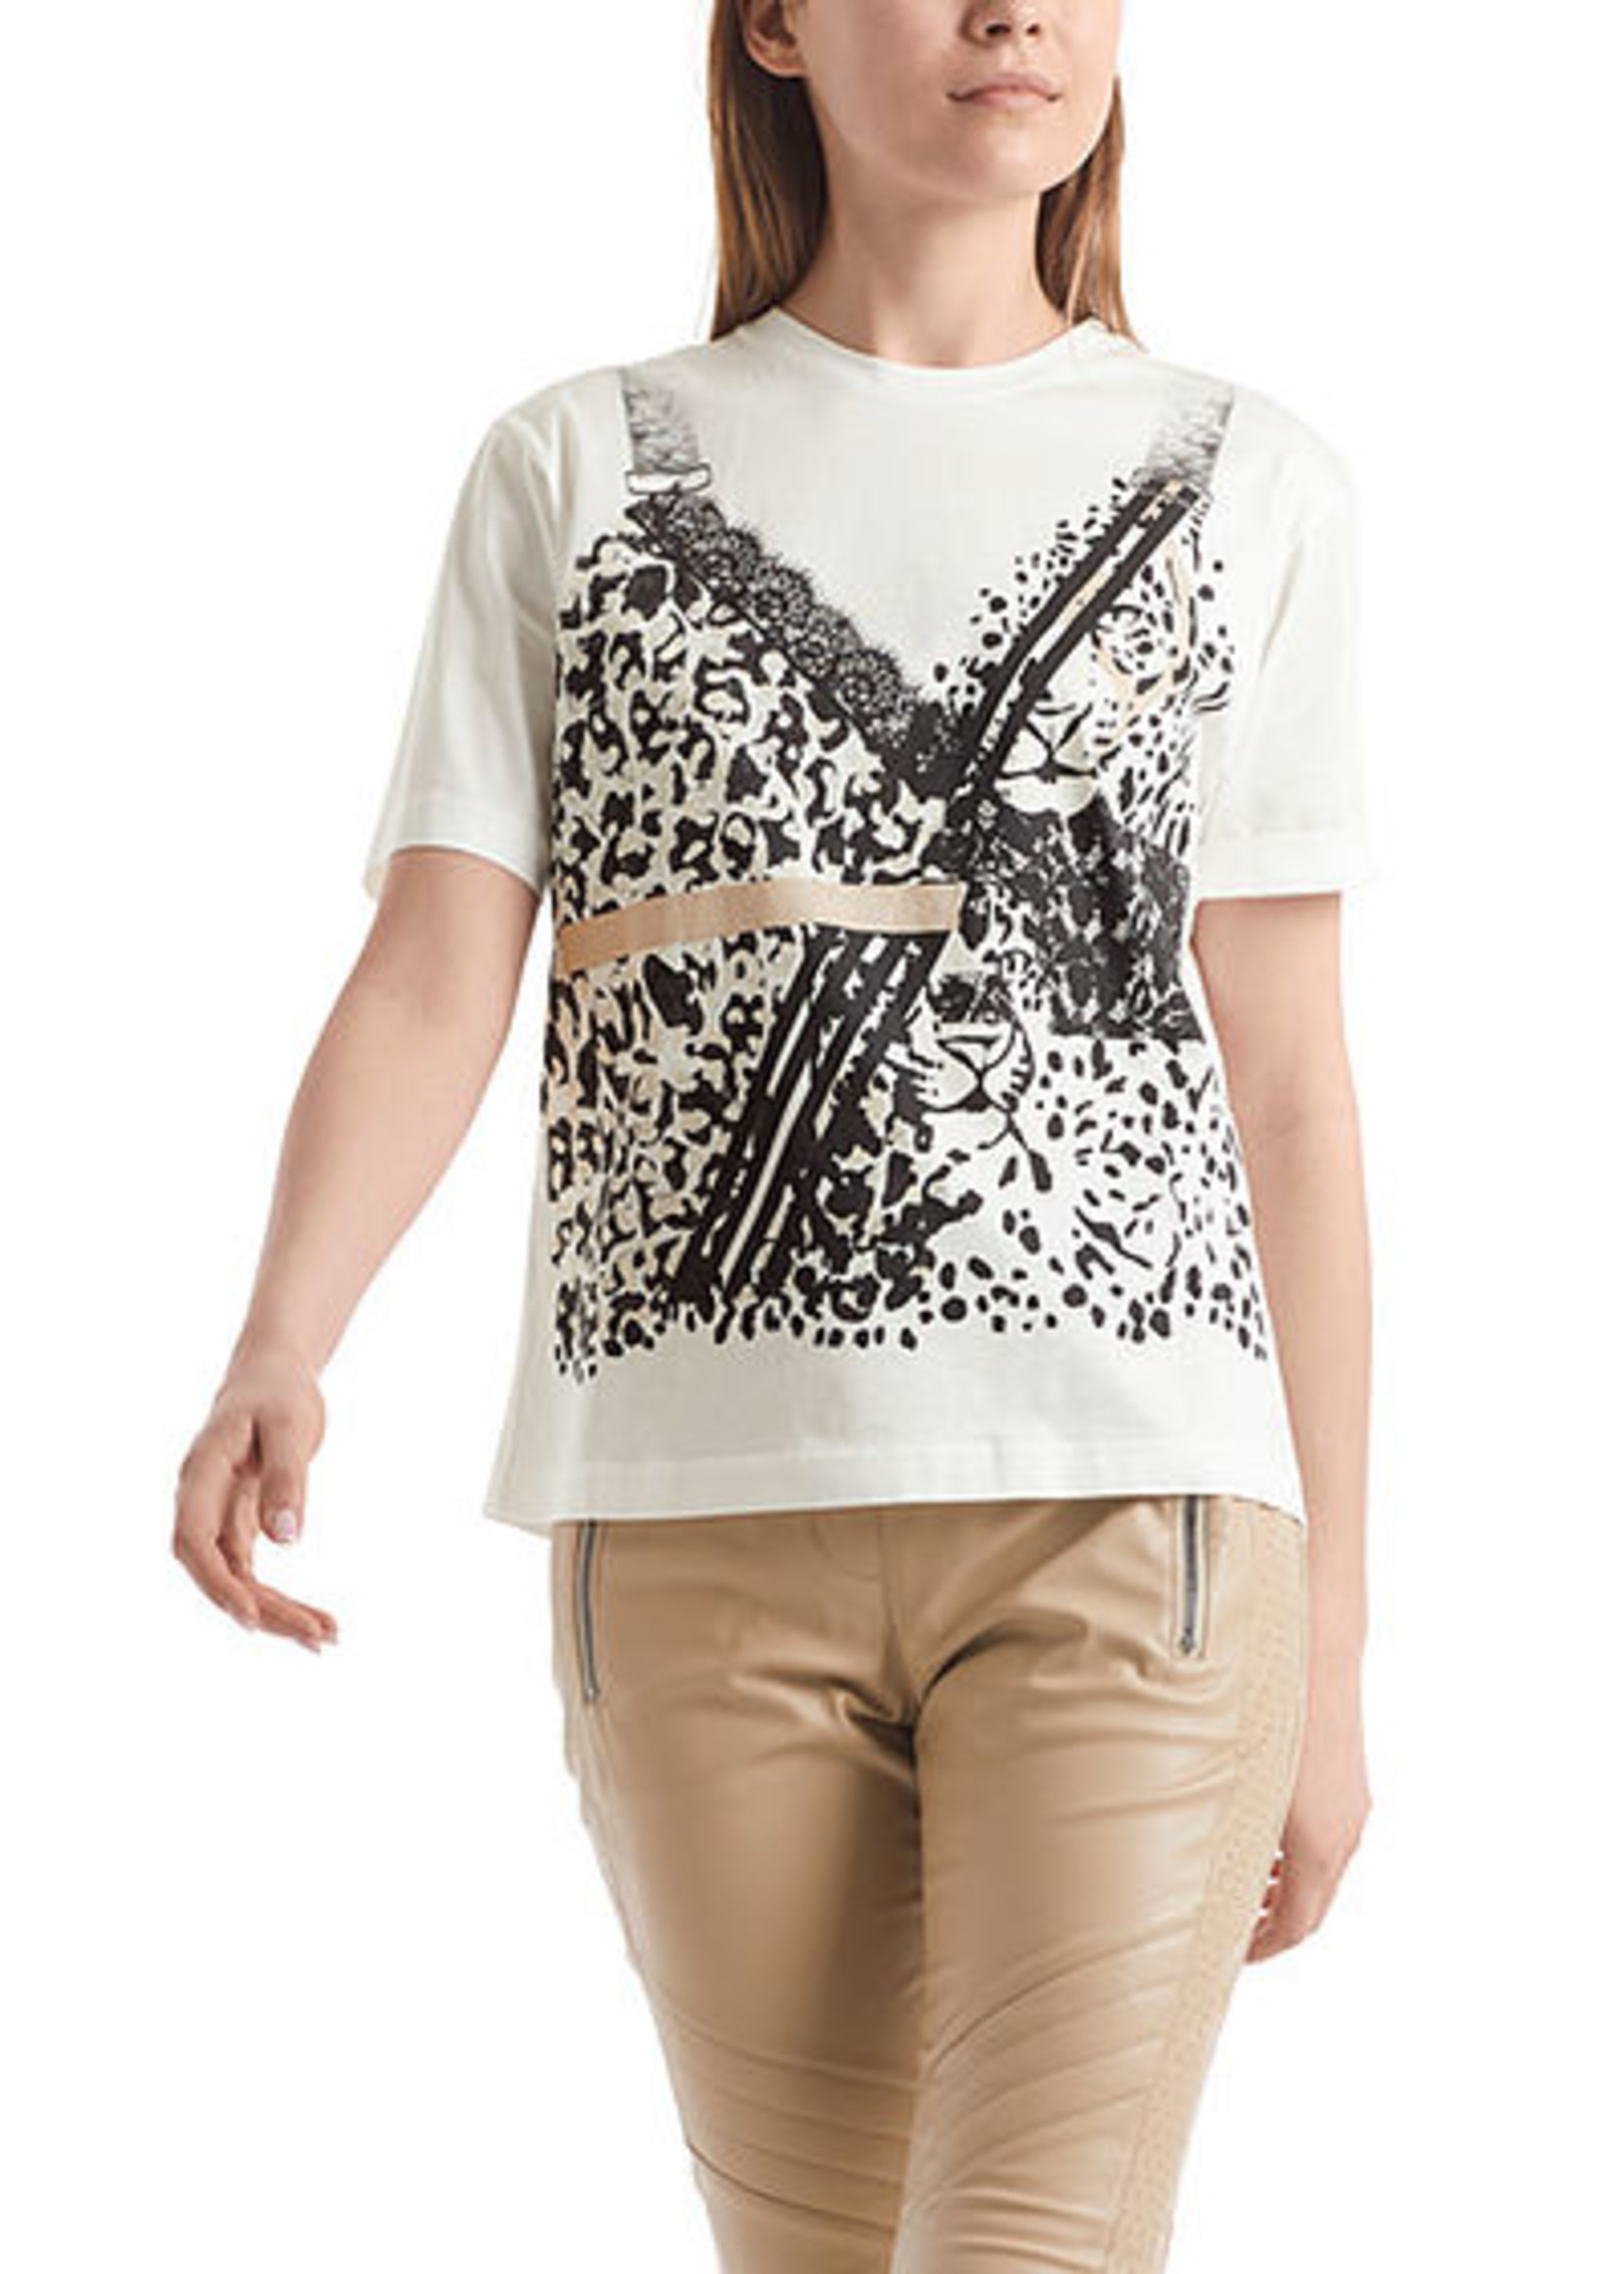 Marccain Sports T-shirt RS 48.21 J79 off-white